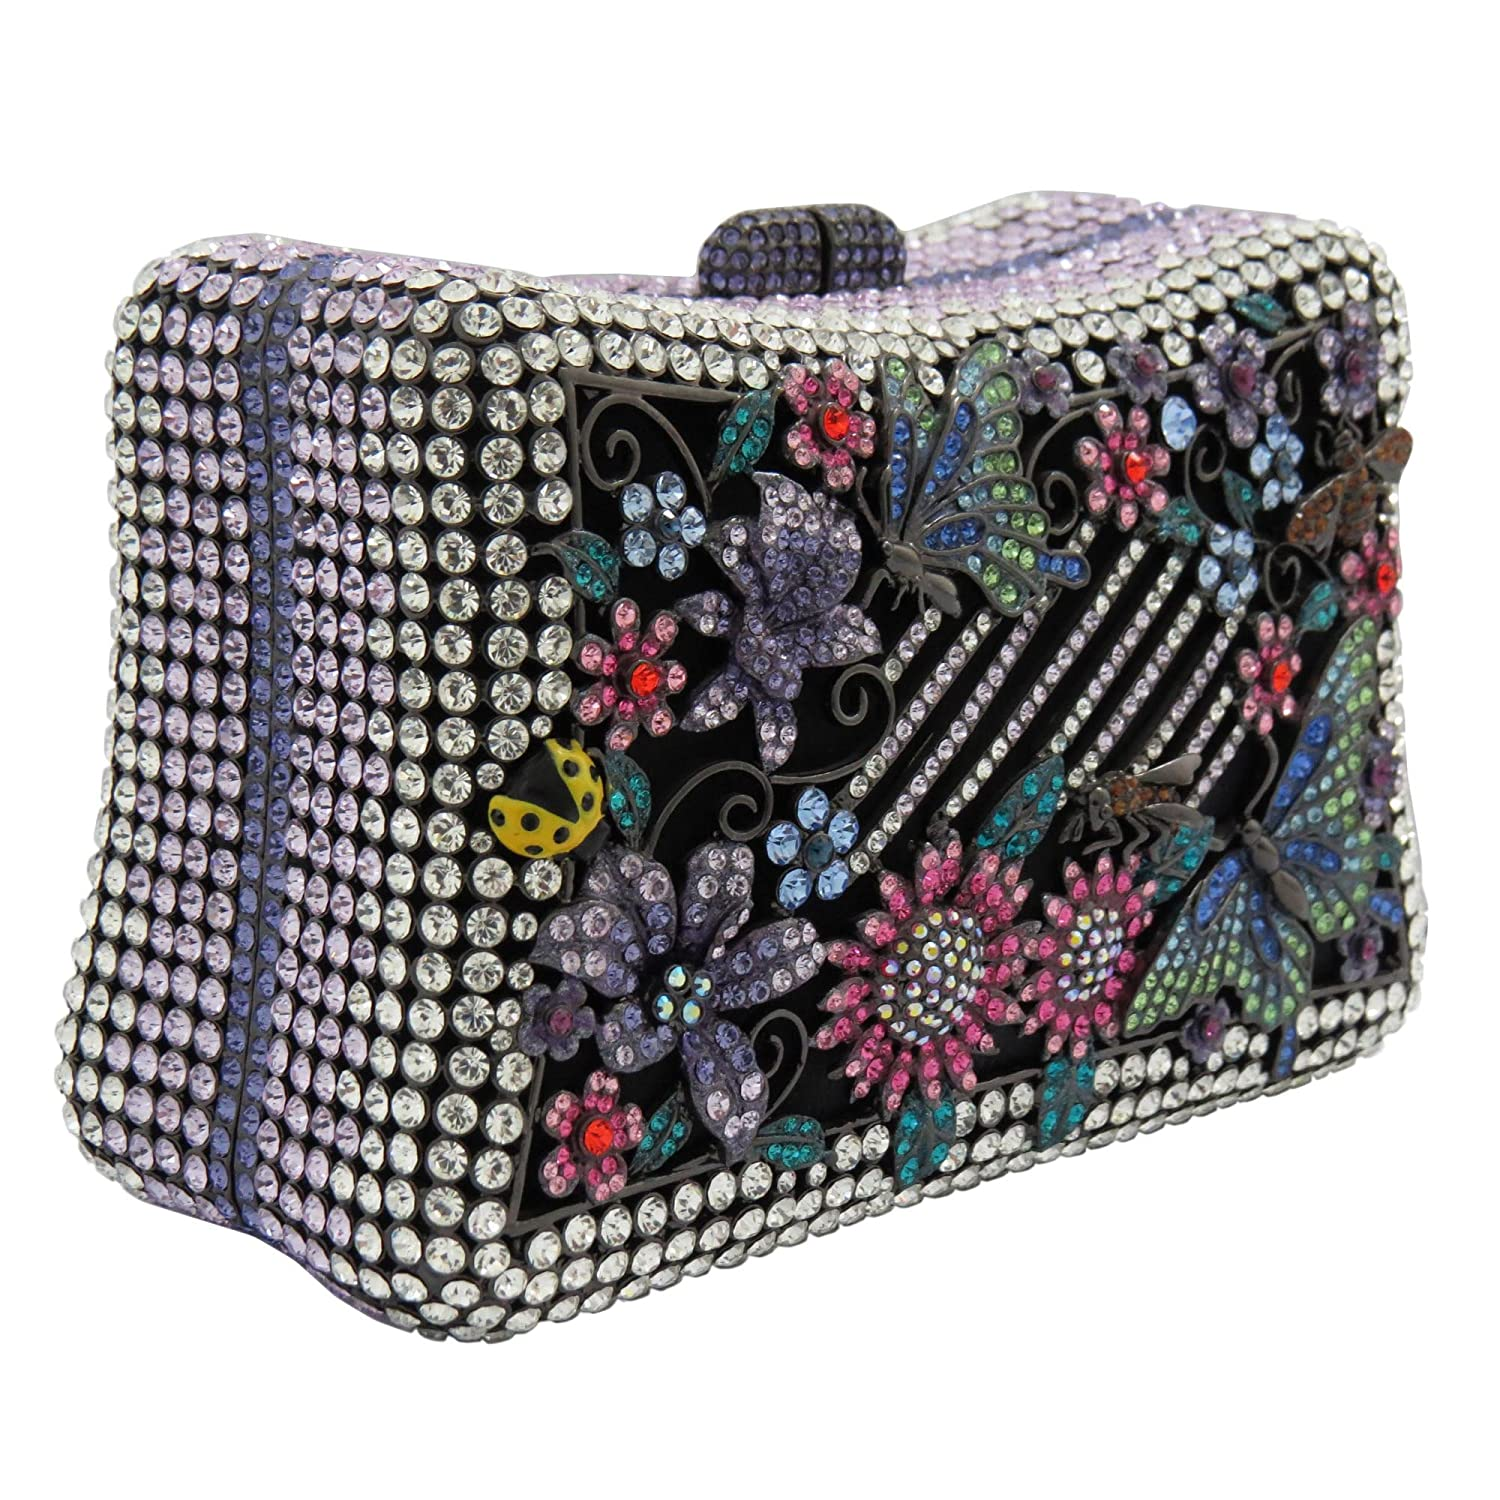 Flowers And Butterflies Design Clutch Purse With Swarovski Element Crystals